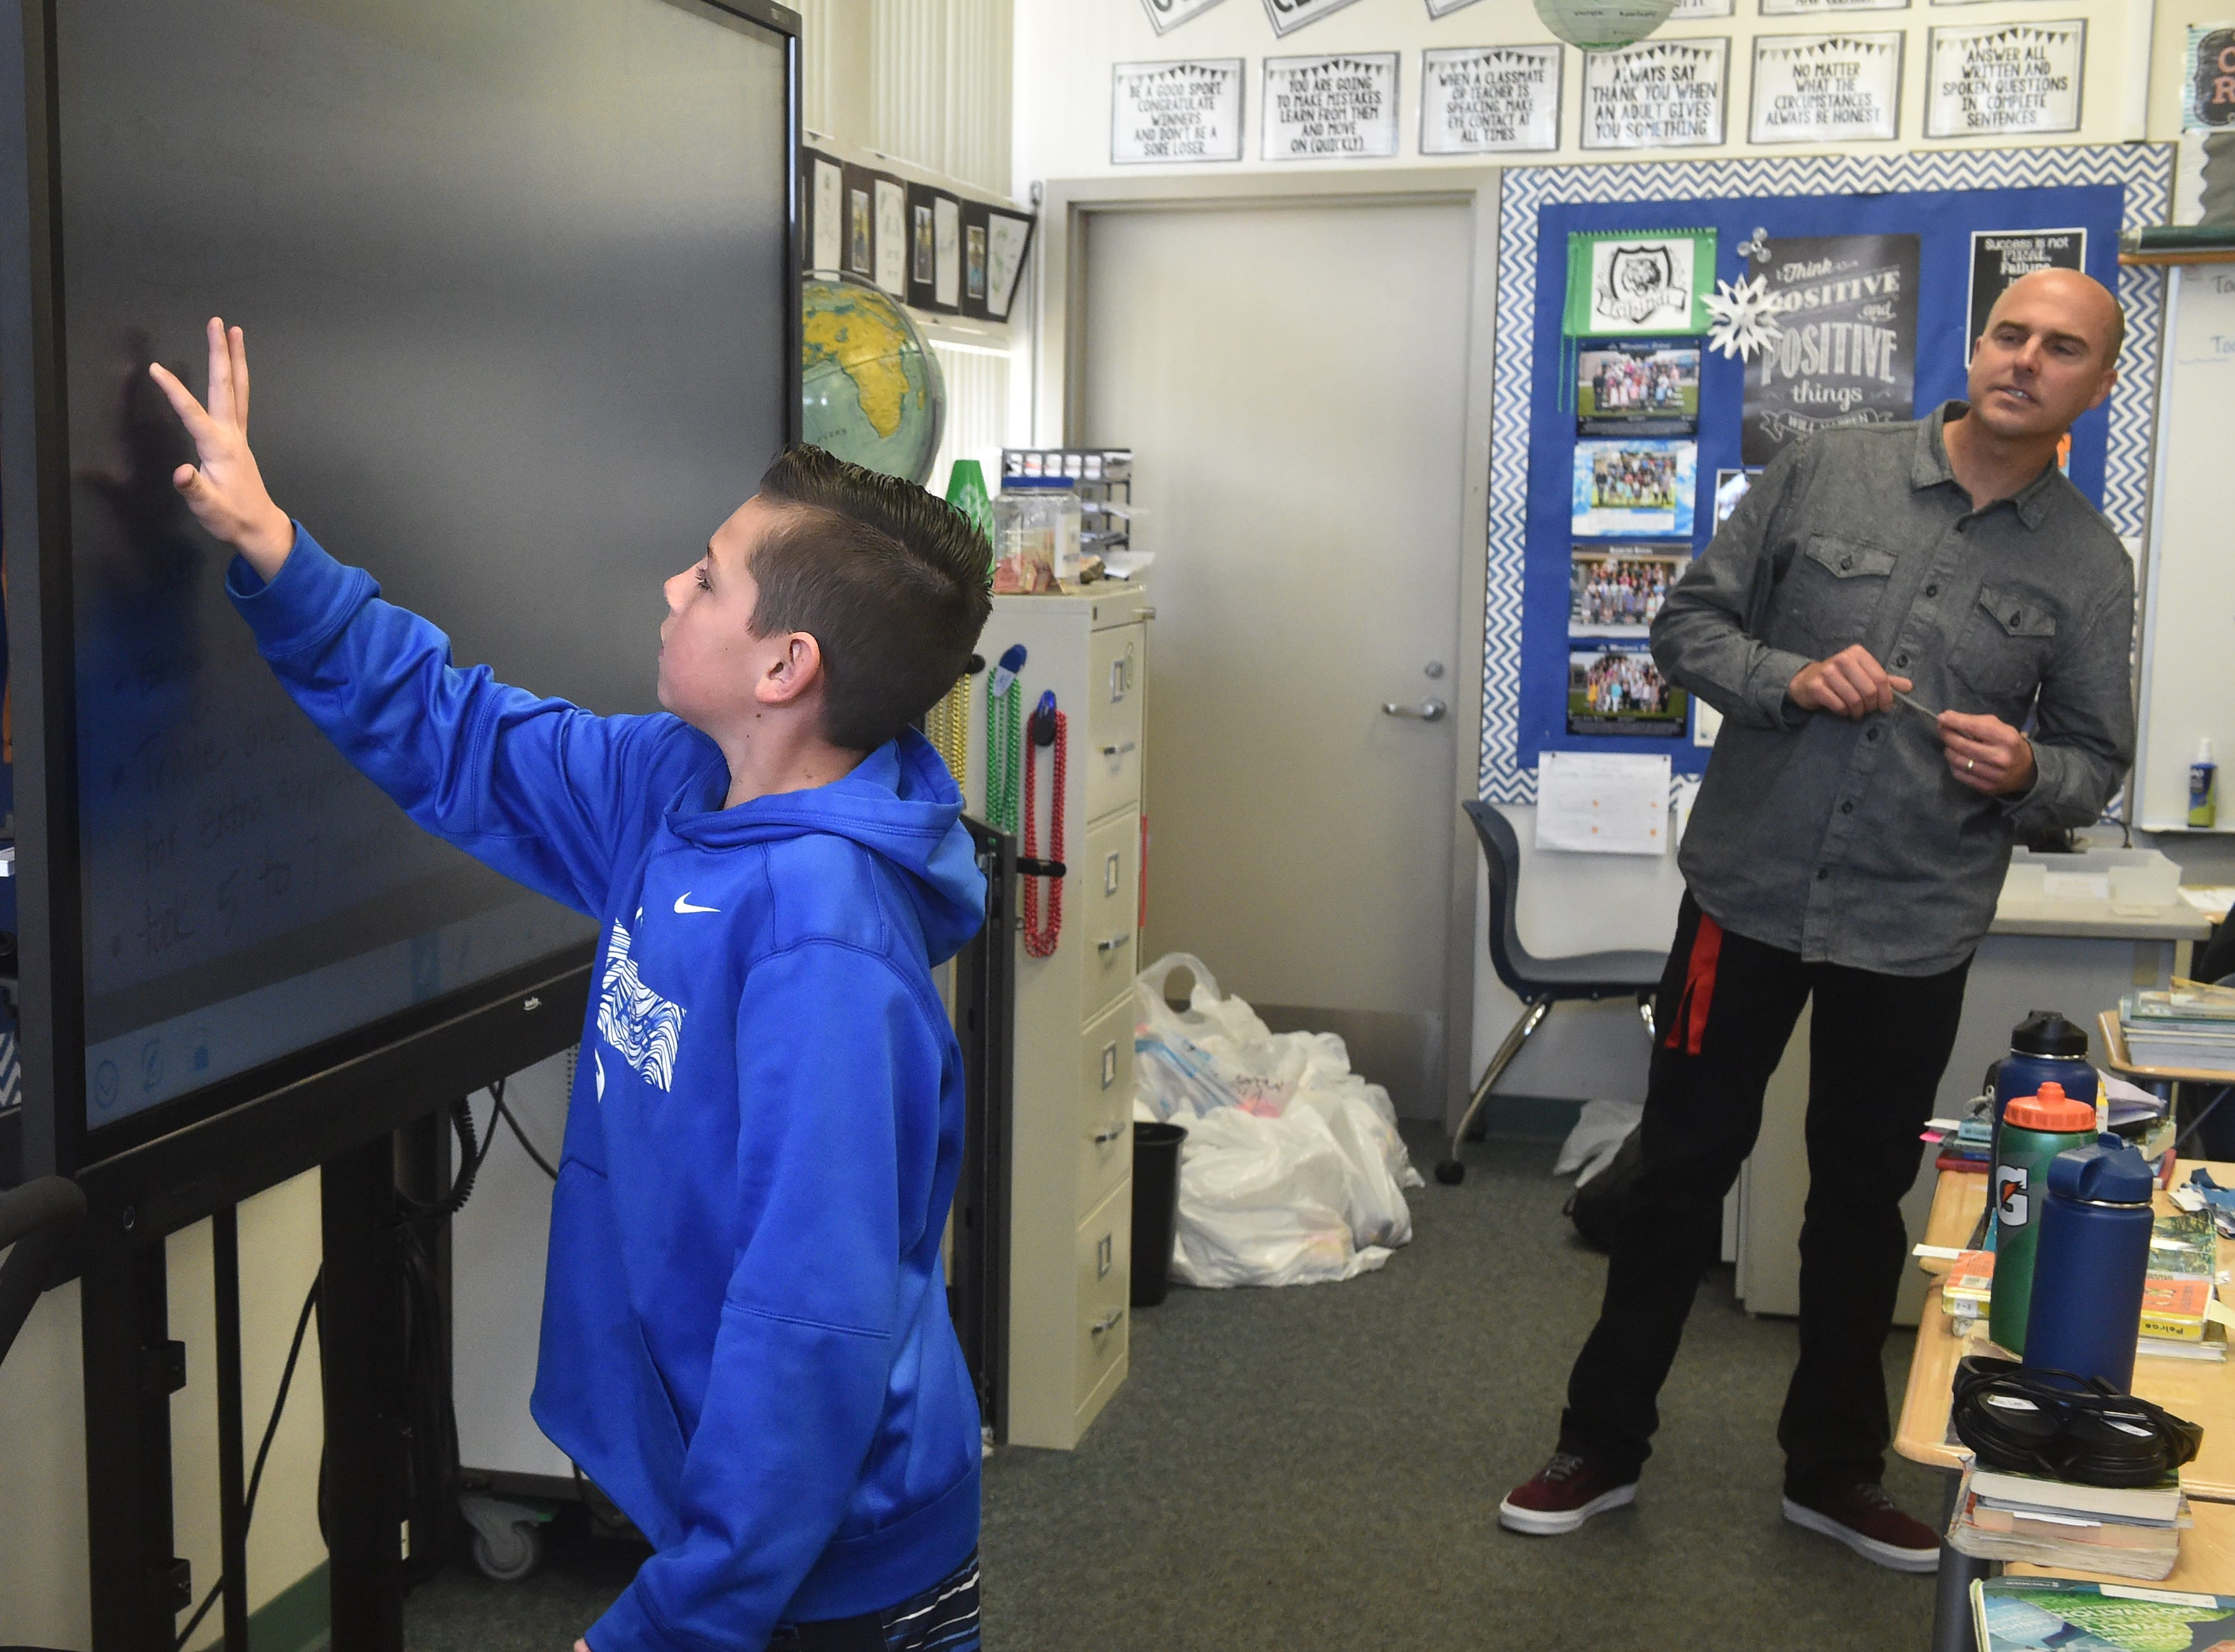 Cohen Tullis, a fourth-grader at Mariposa School in Camarillo, uses a new touch-screen display during class on a recent Monday as teacher Dave Ford looks on. The Pleasant Valley School District is using funds from Measure C to purchase technology for the classrooms.